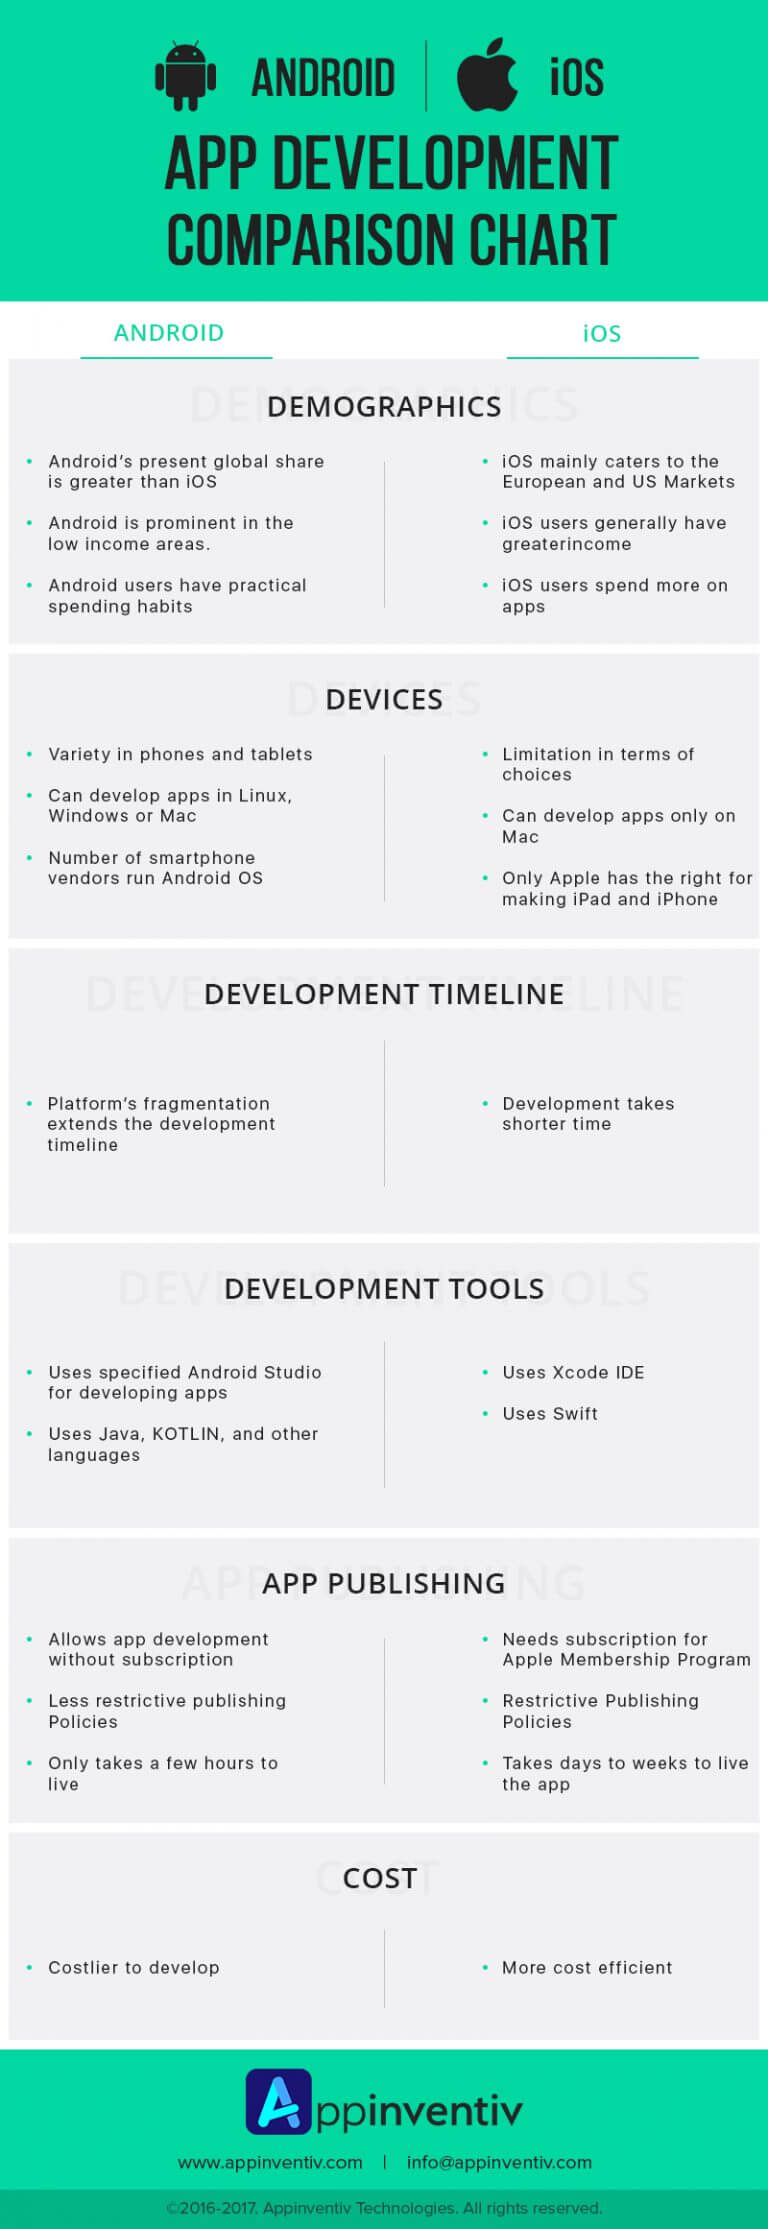 Android vs. iOS App Development Comparison Chart